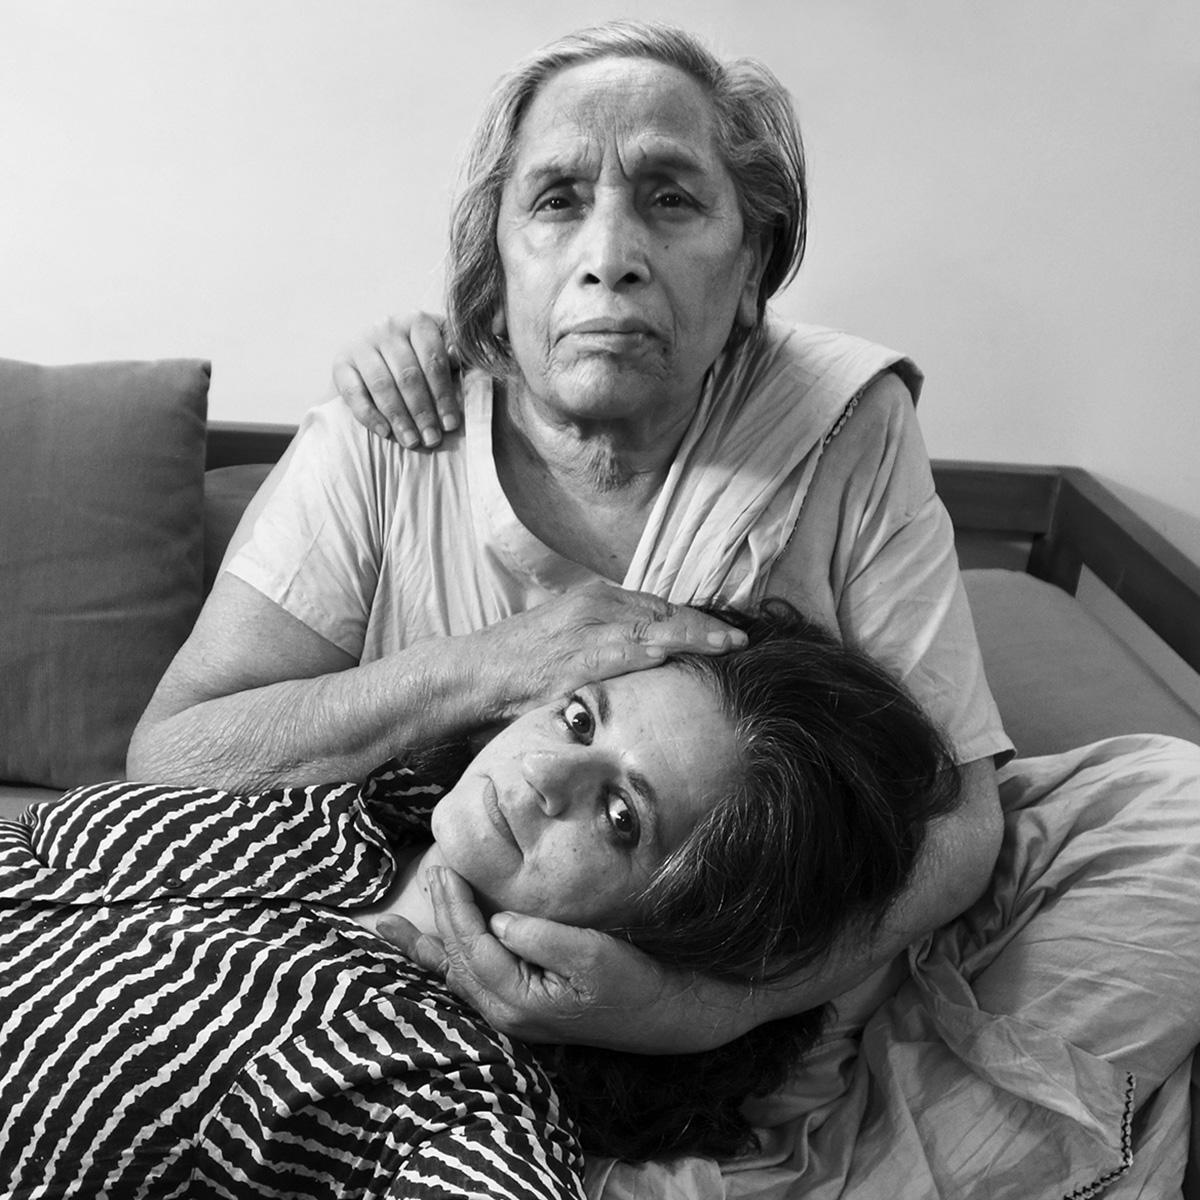 Nixi became Dayanita Singh, the photographer, here on the lap of her favourite Mona Ahmed, New Delhi. 2013